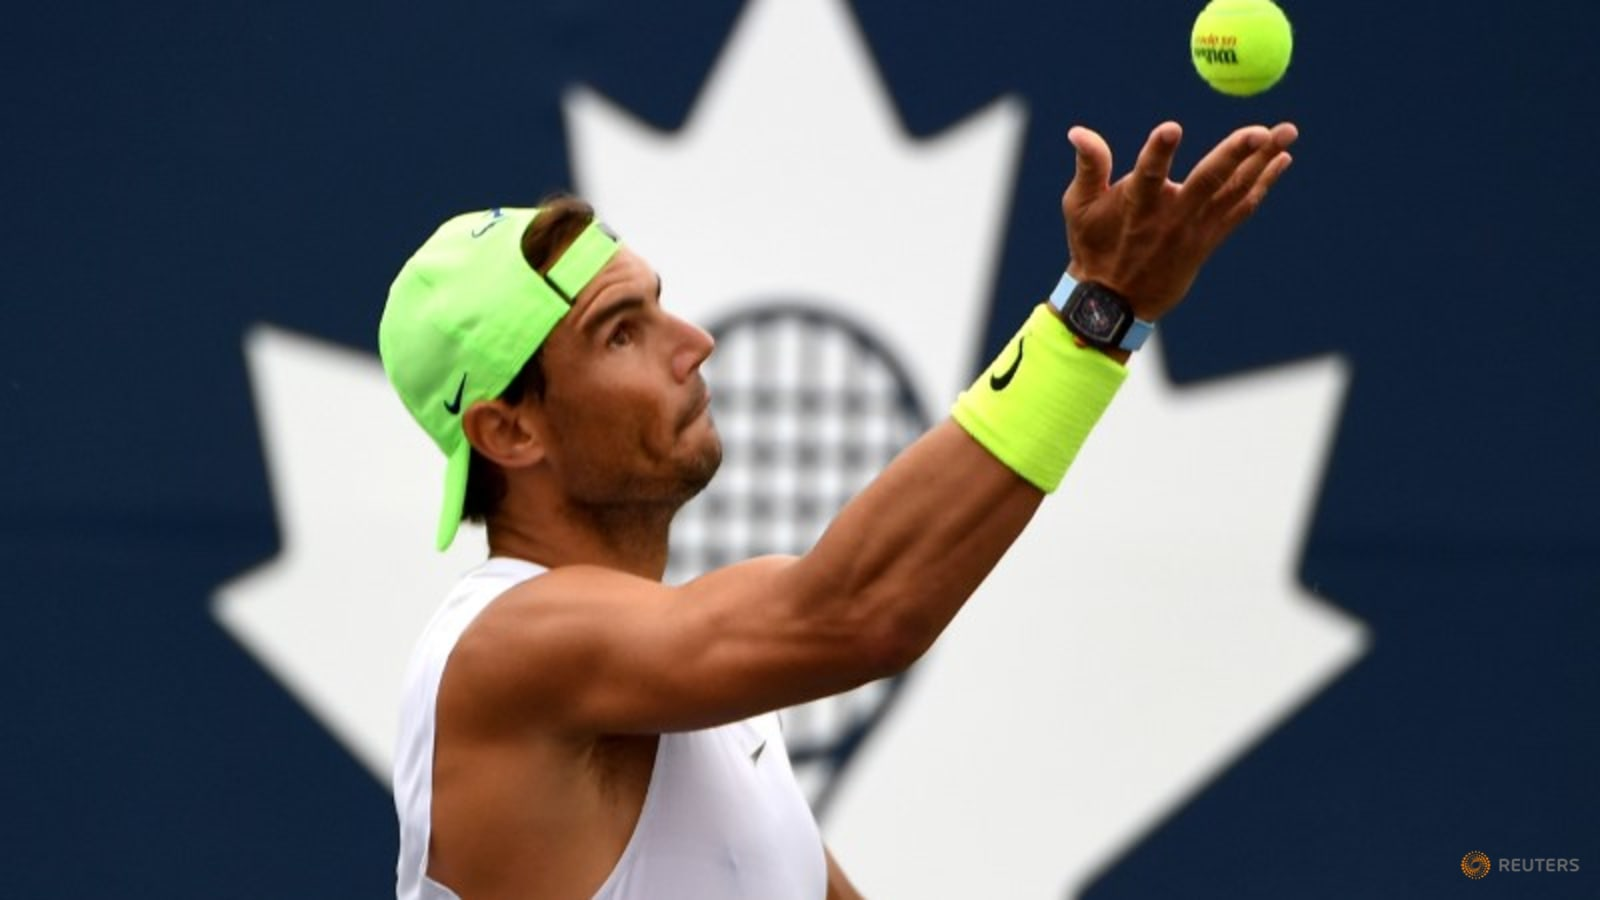 Tennis-Nadal withdraws from Cincinnati hardcourt event with foot injury thumbnail